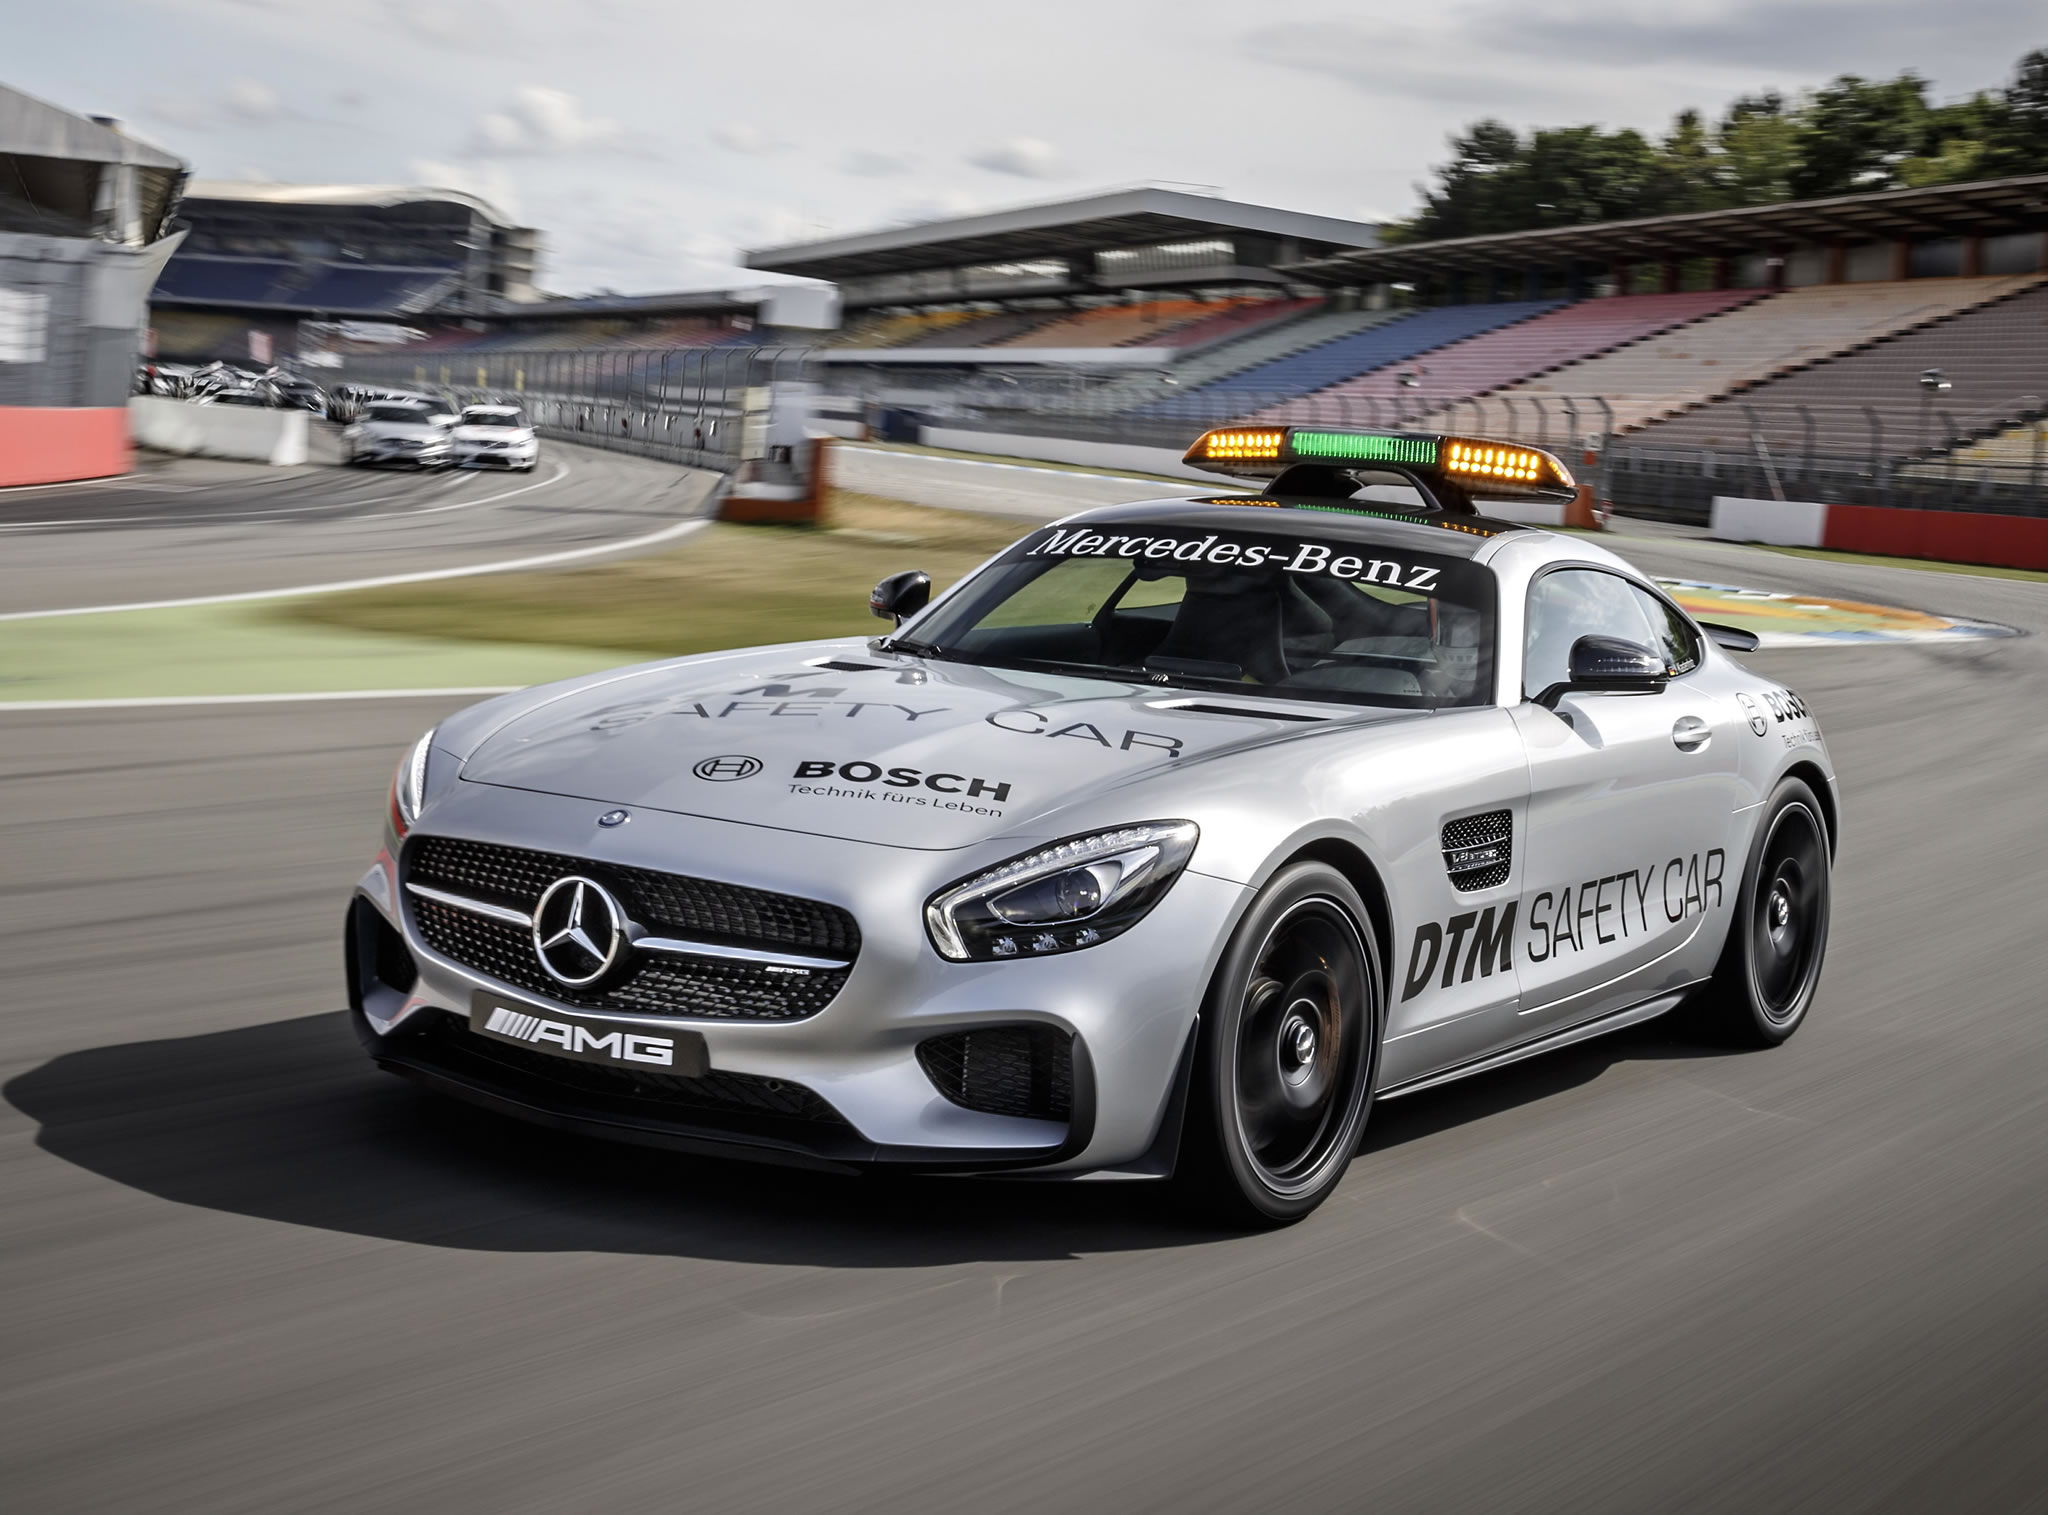 2015 mercedes benz amg gt s dtm safety car front photo. Black Bedroom Furniture Sets. Home Design Ideas